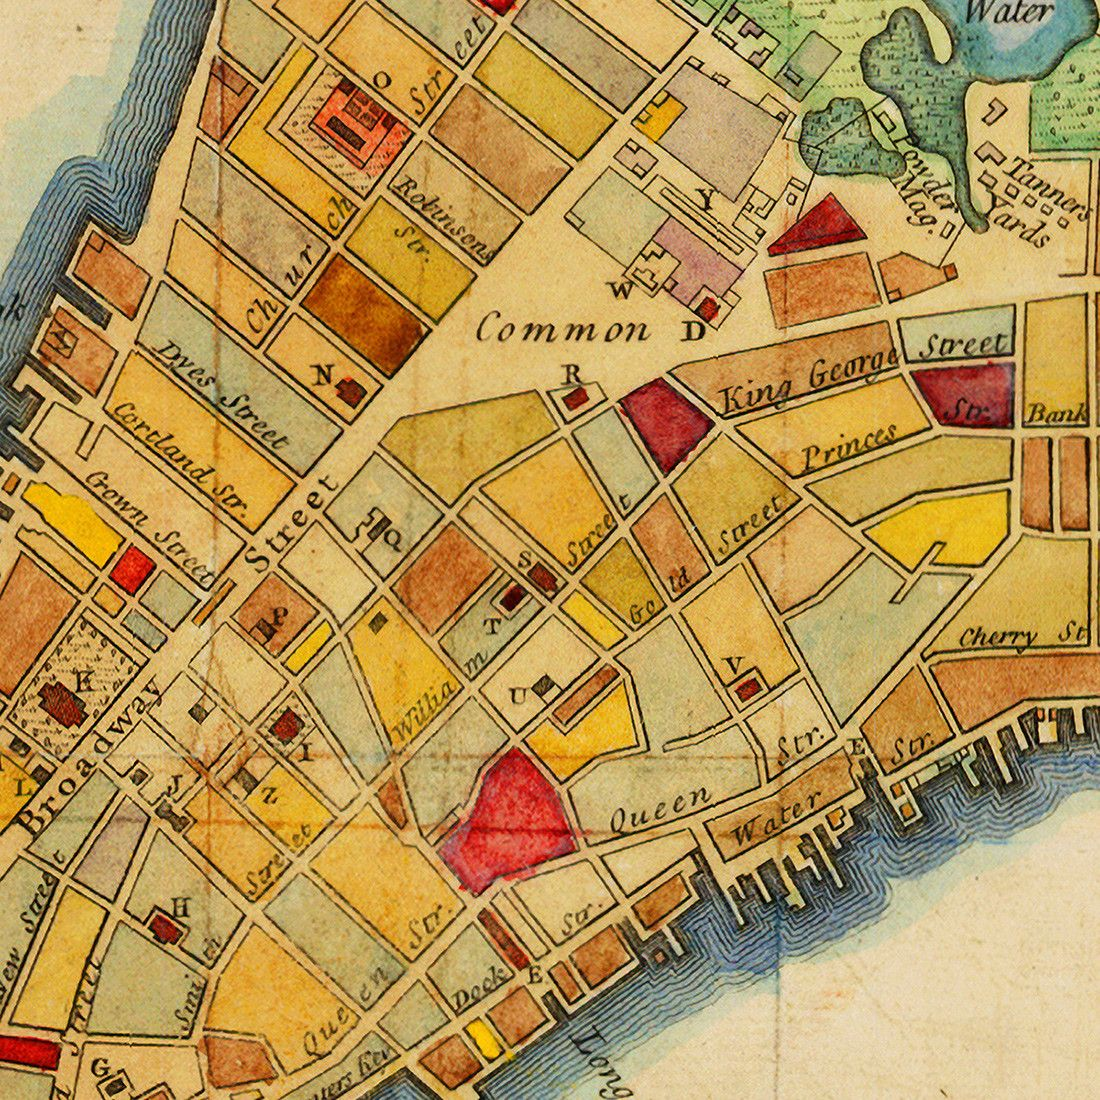 City Plan of New York, 1776, Revolutionary Era Map ... Map Of Poland on map of washington, map of rent, map of the civil war, map of broadway theatre, map of titanic, map of sunset boulevard, map of republic of rome, map of alexander the great, map of truman, map of independence hall, map of gettysburg, map of thomas jefferson, map of allegro, map of d-day, map of johnny tremain, map of greece, map of bonnie & clyde, map of memphis, map of gypsy, map of assassins,